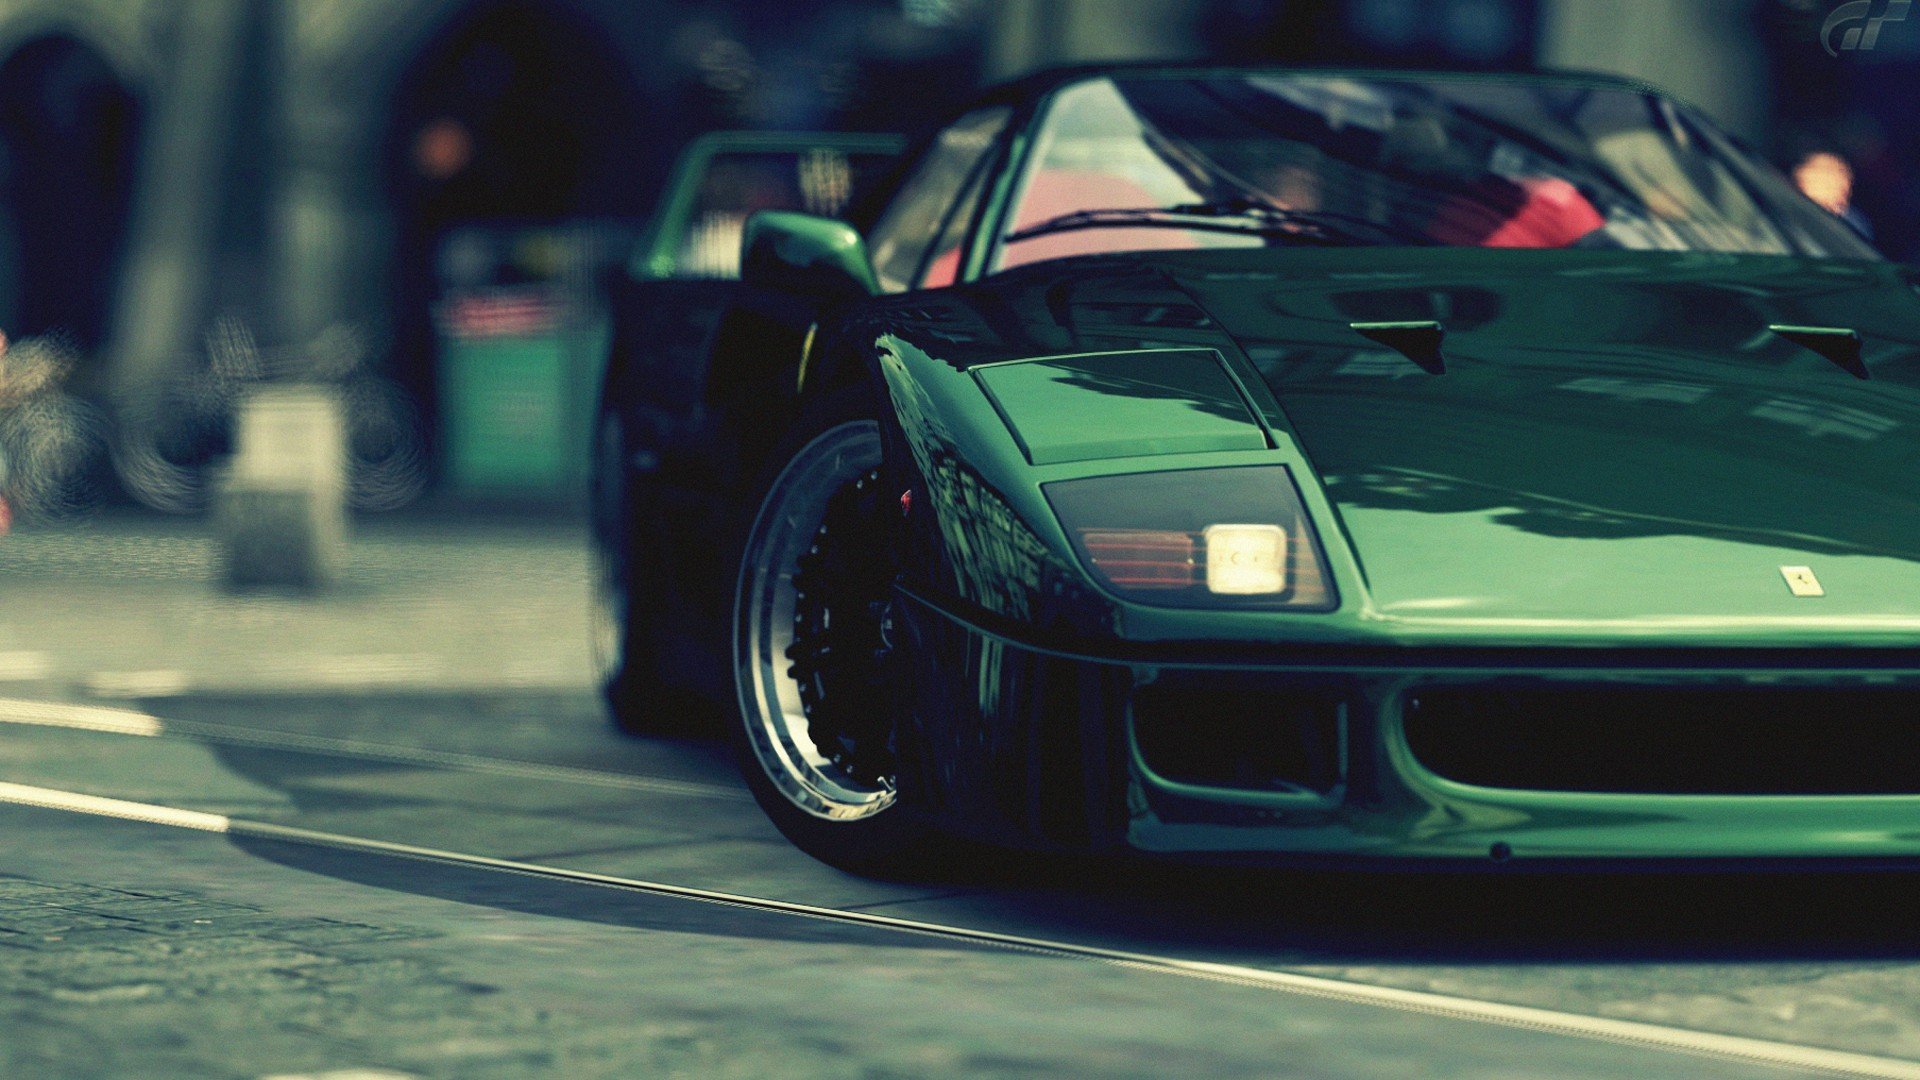 wallpaper green ferrari cars - photo #32